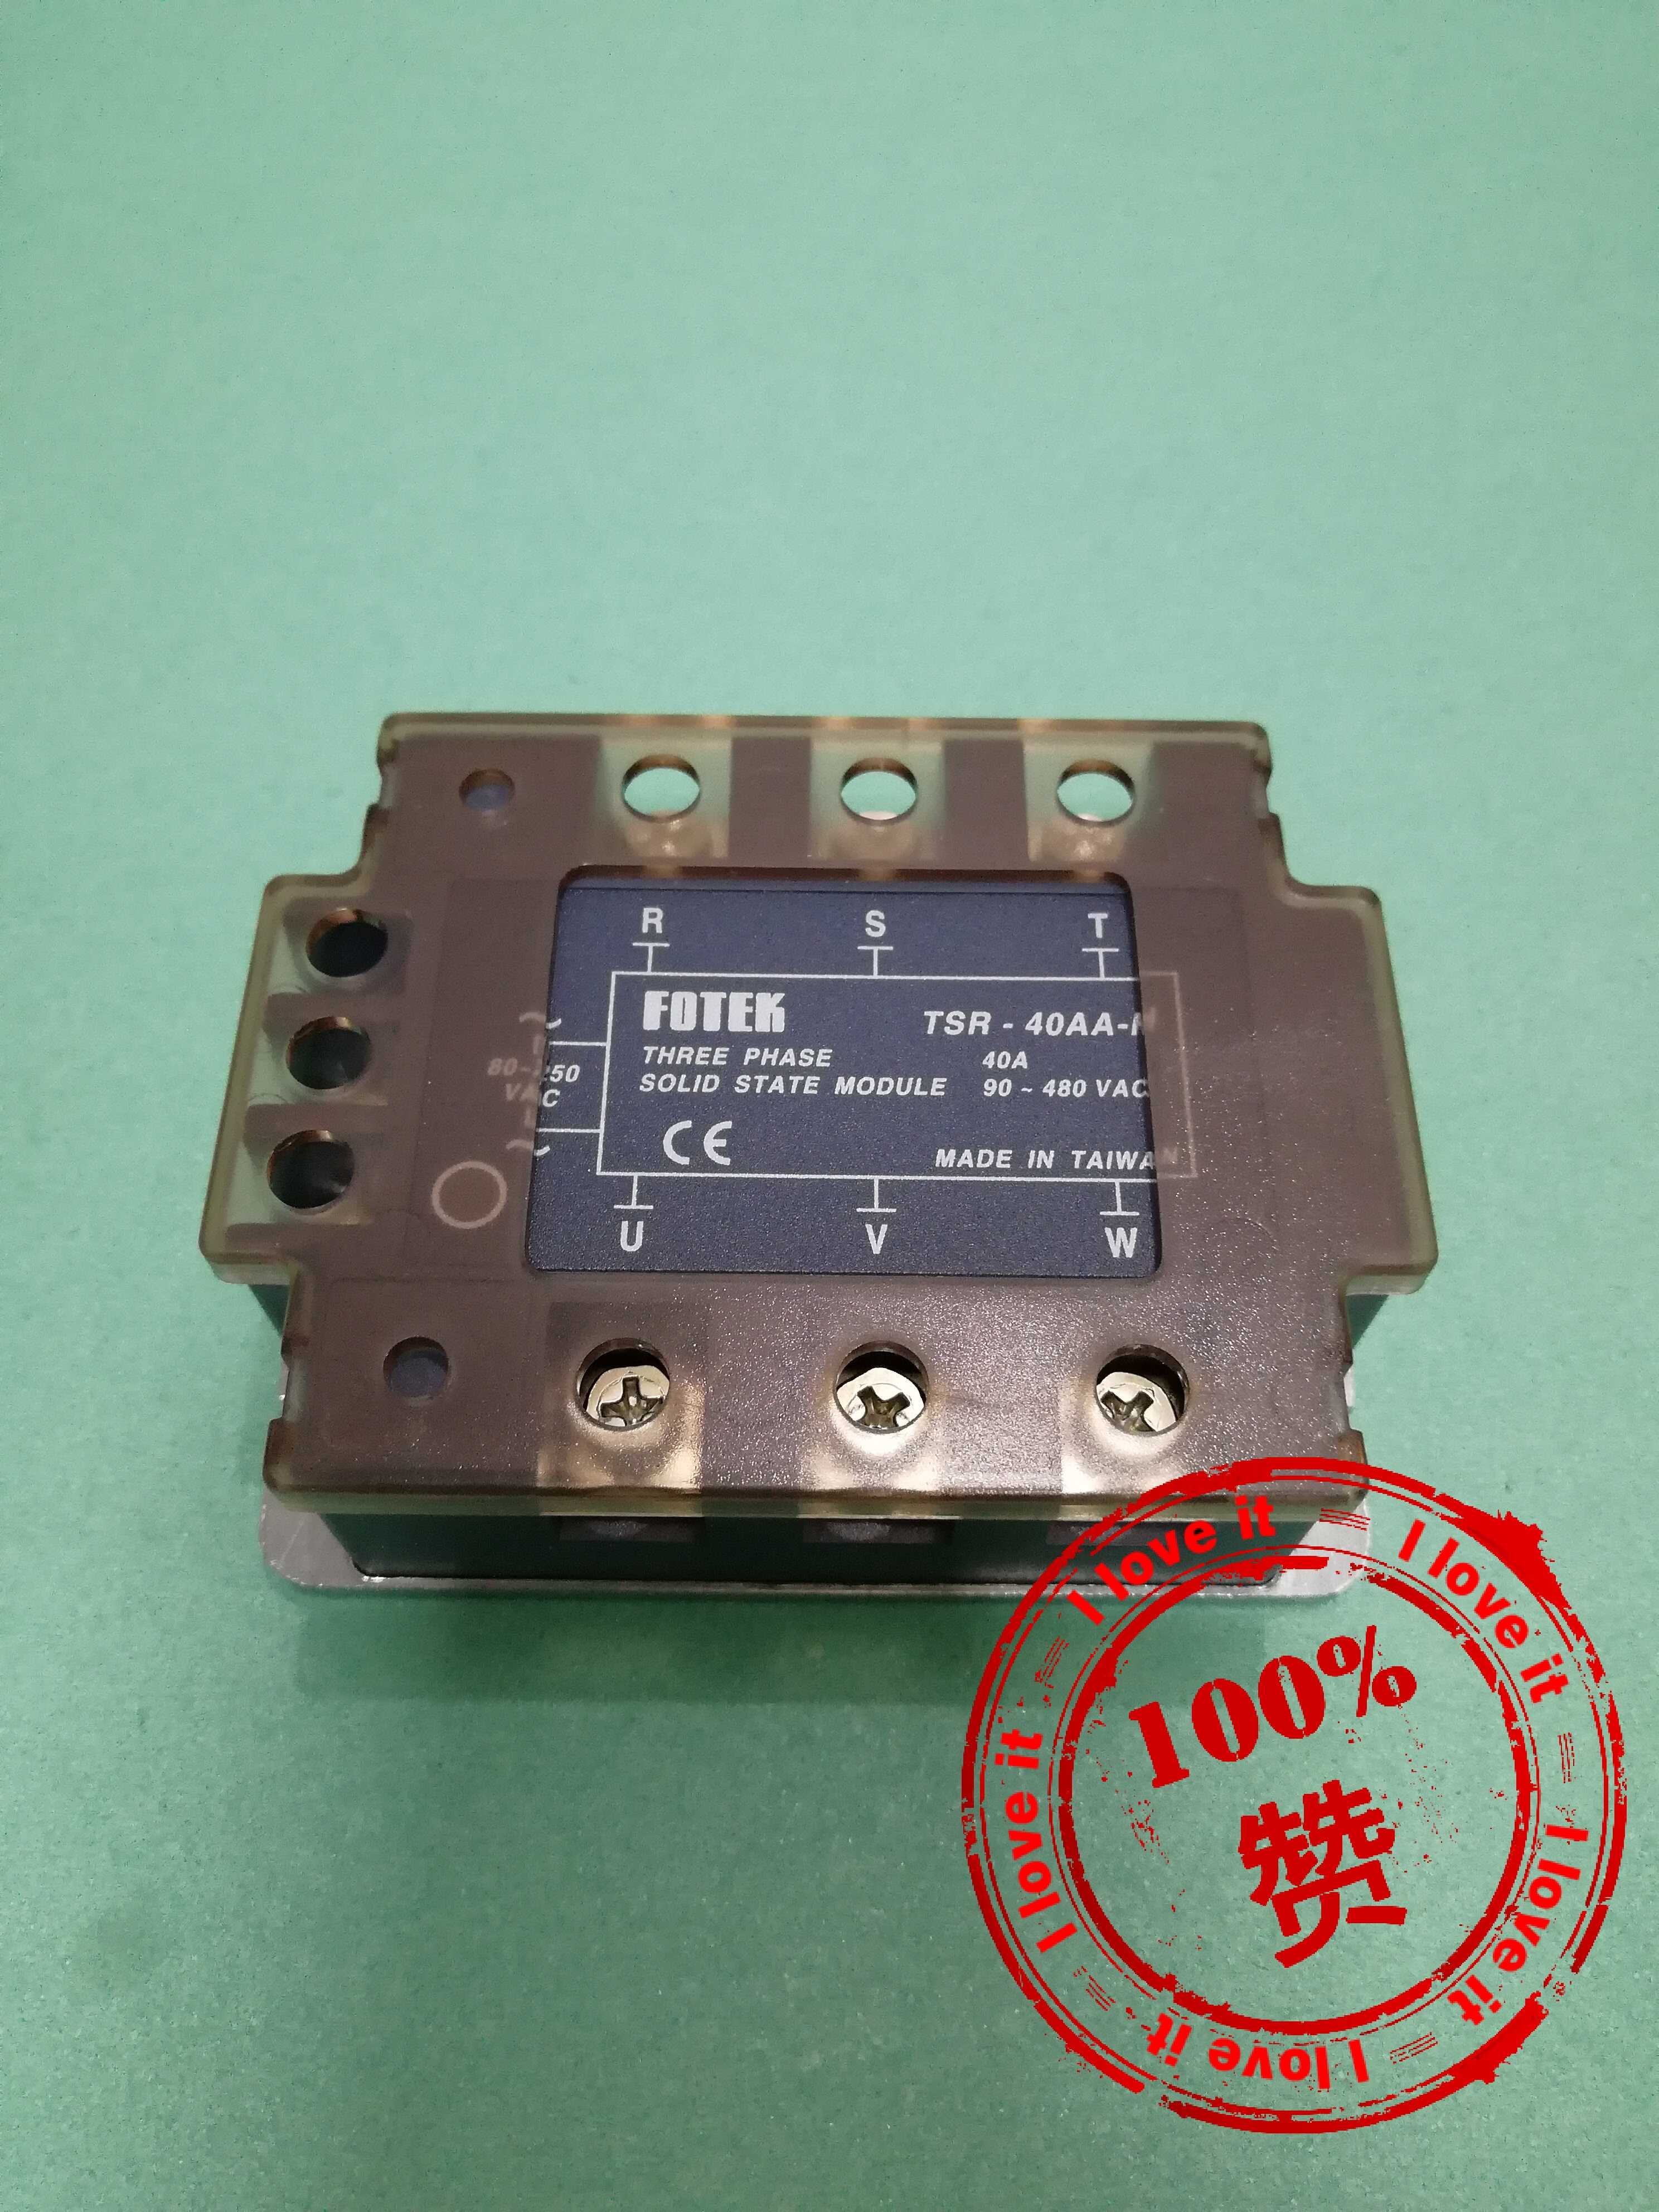 New Original Three-phase Solid-state Relay TSR-40AA-H Will Be Fined 10 For One Fake.